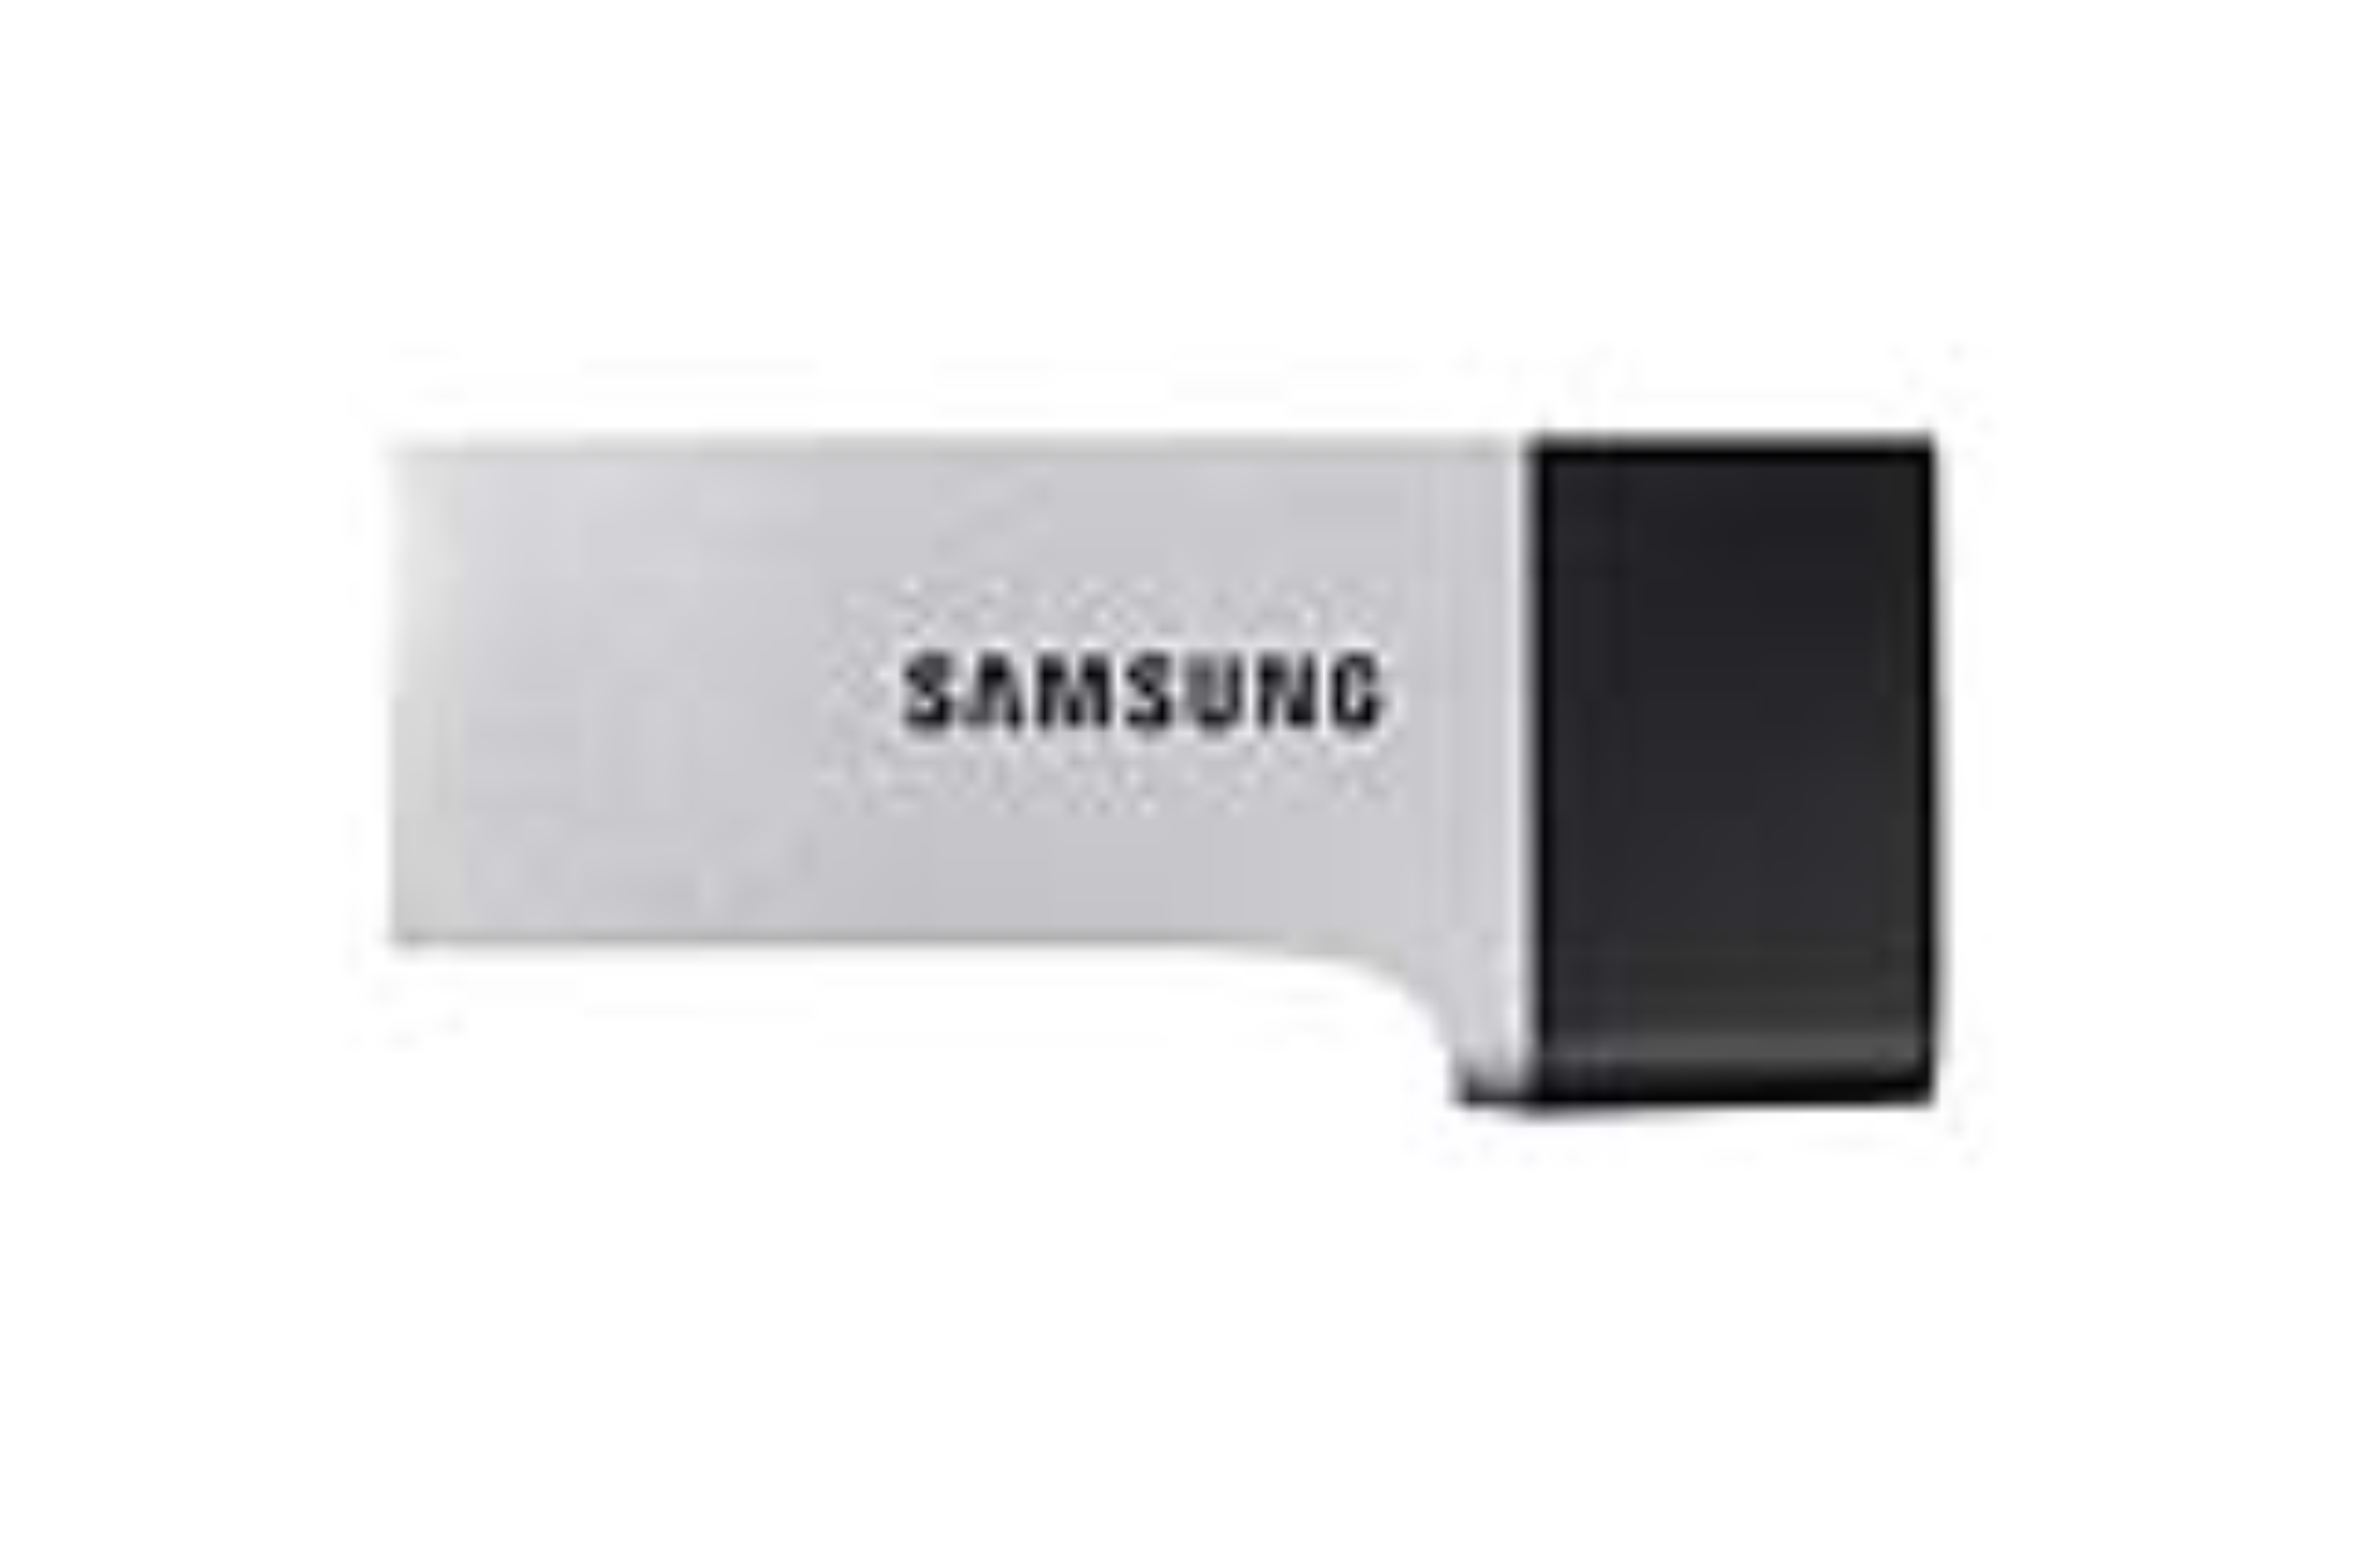 Samsung USB 3.0 Flash Disk OTG 128GB